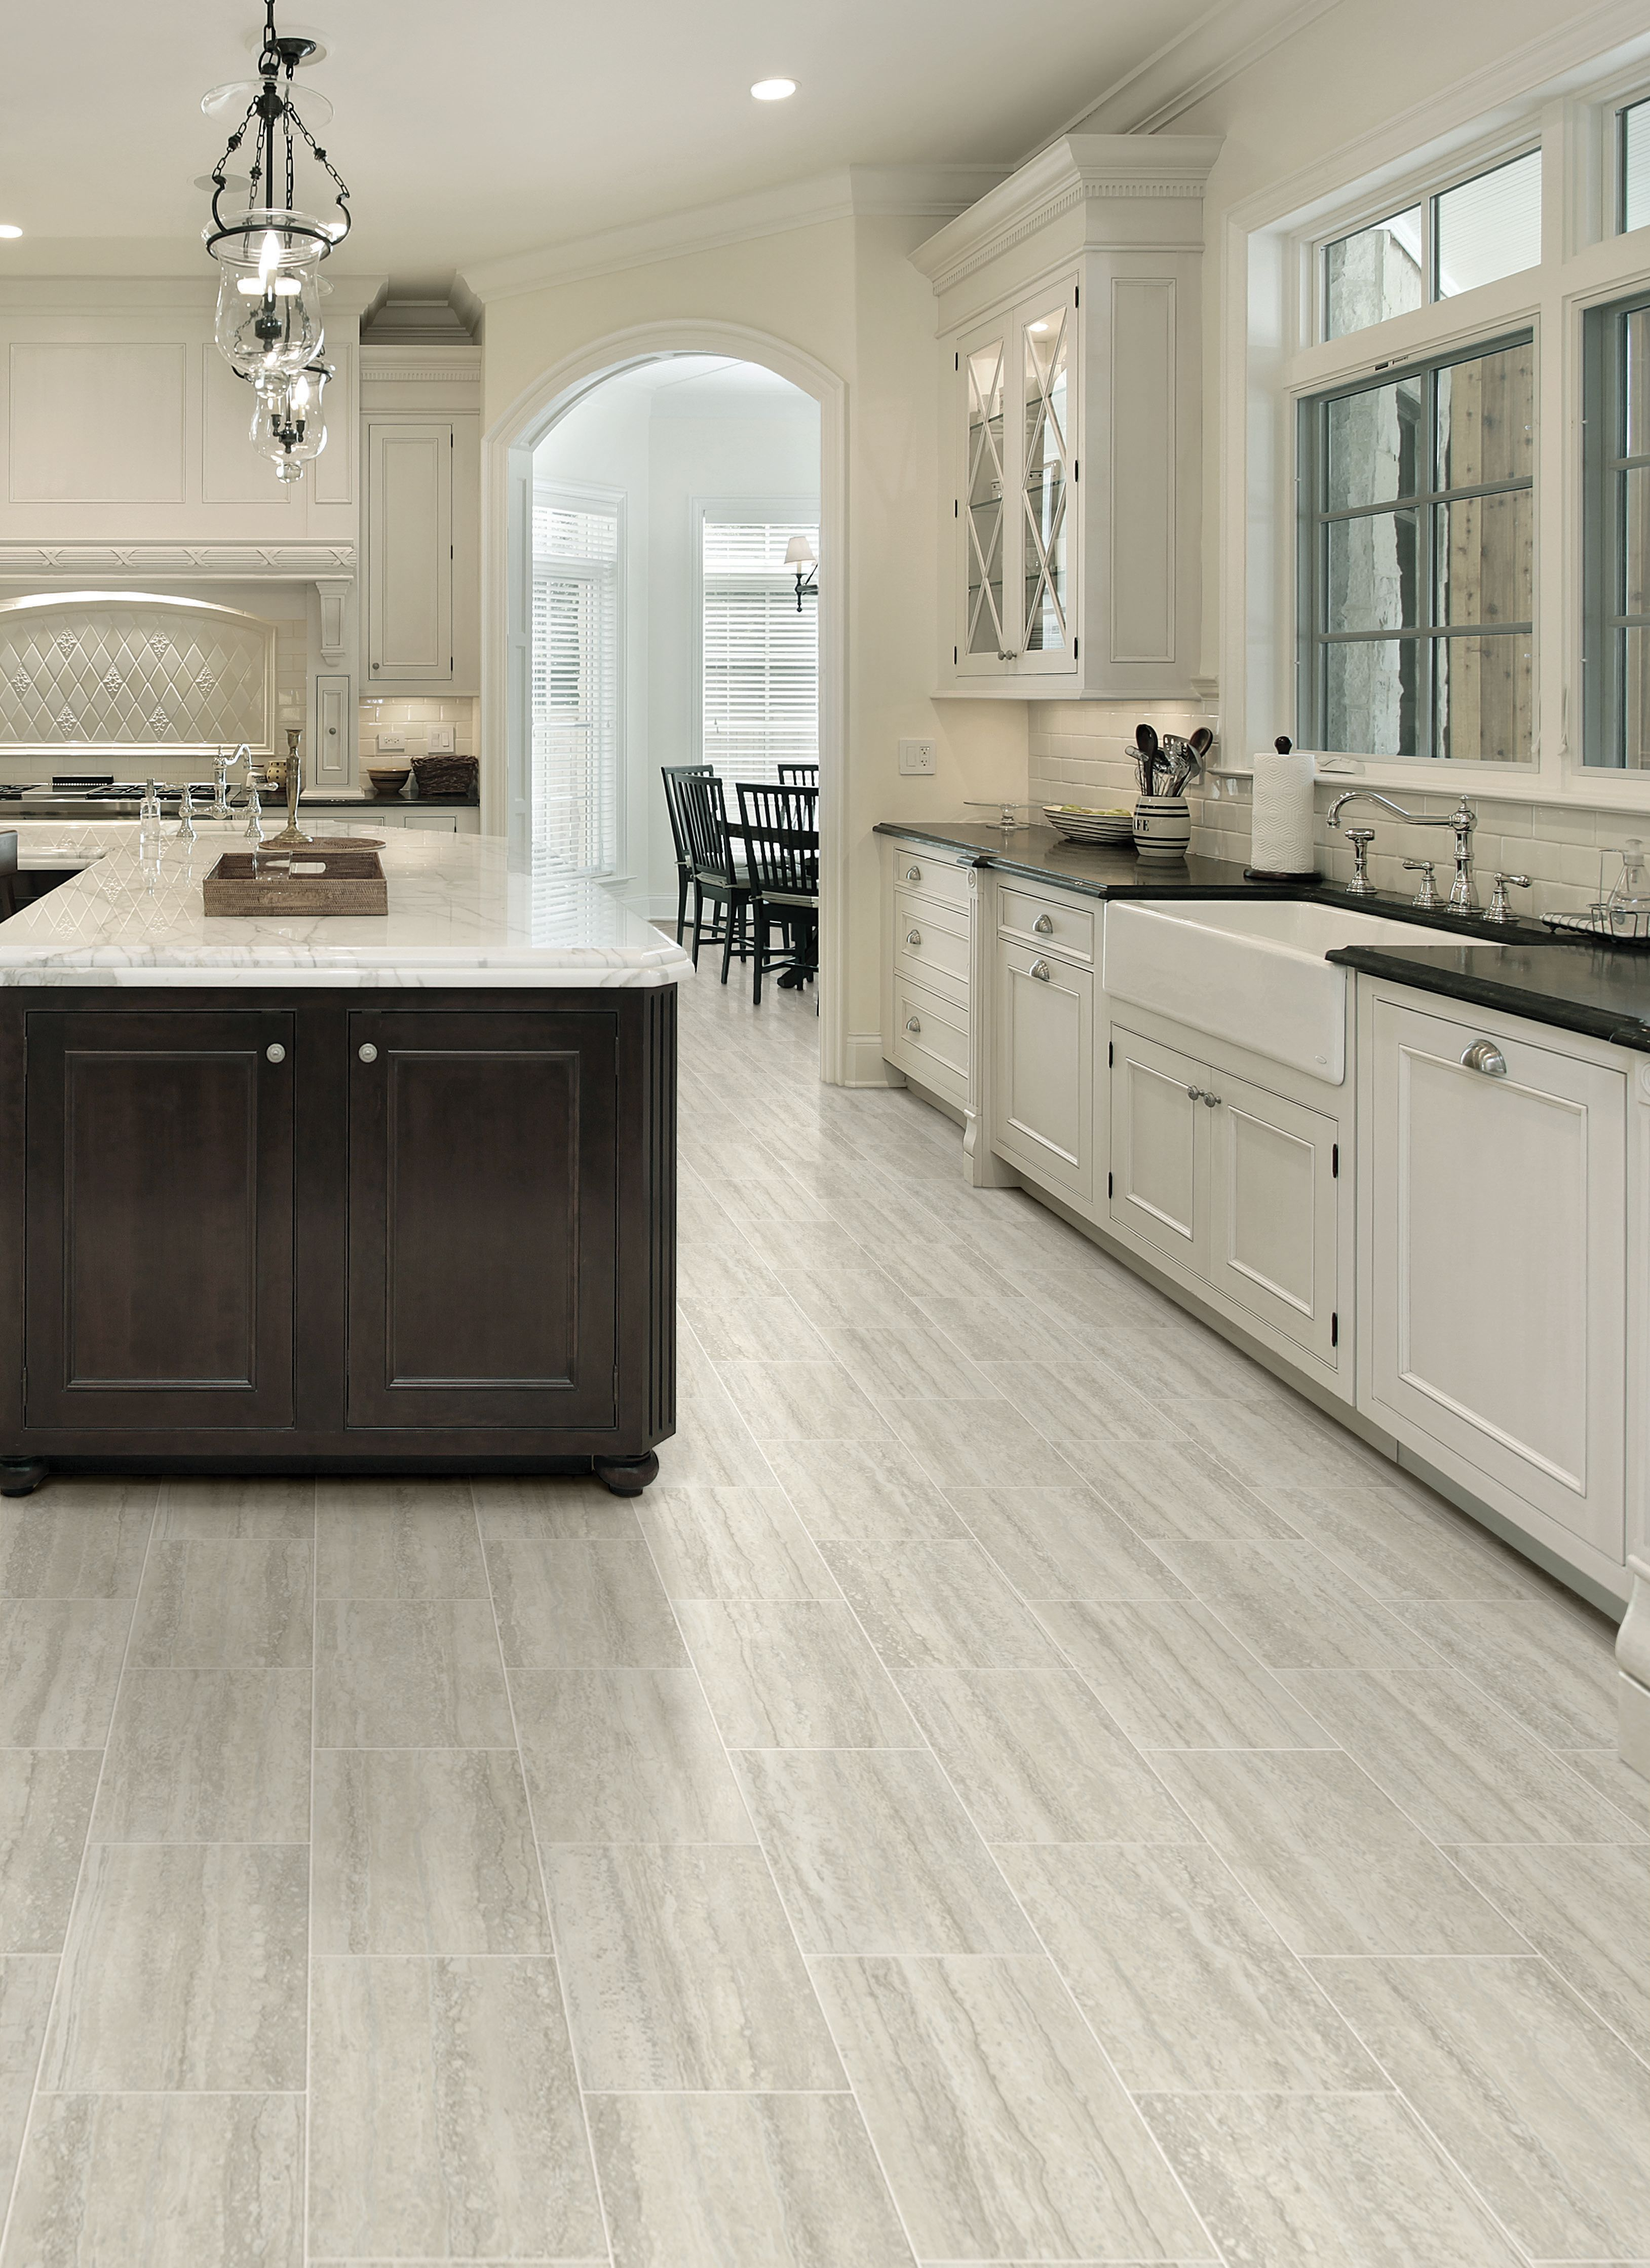 Kitchen Flooring Ideas Photos Modernize Your Kitchen With Durable And Comfortable Sheet Vinyl